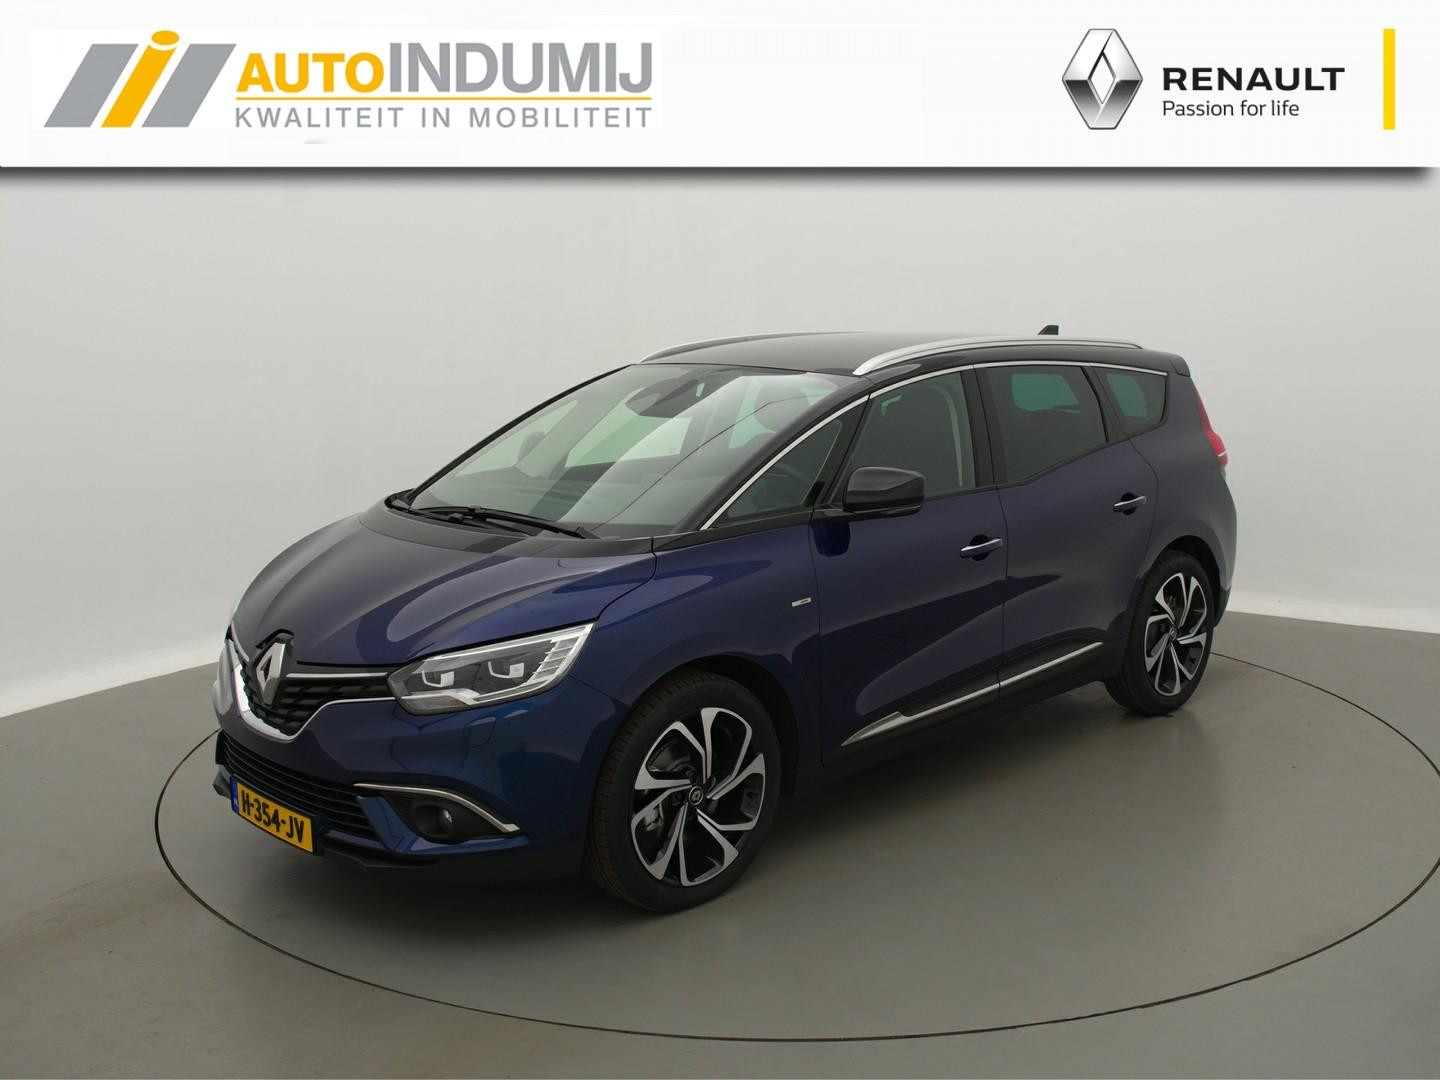 Renault Grand scénic Tce 160 edc bose automaat // camera / stoelverwarming / apple carplay & android auto